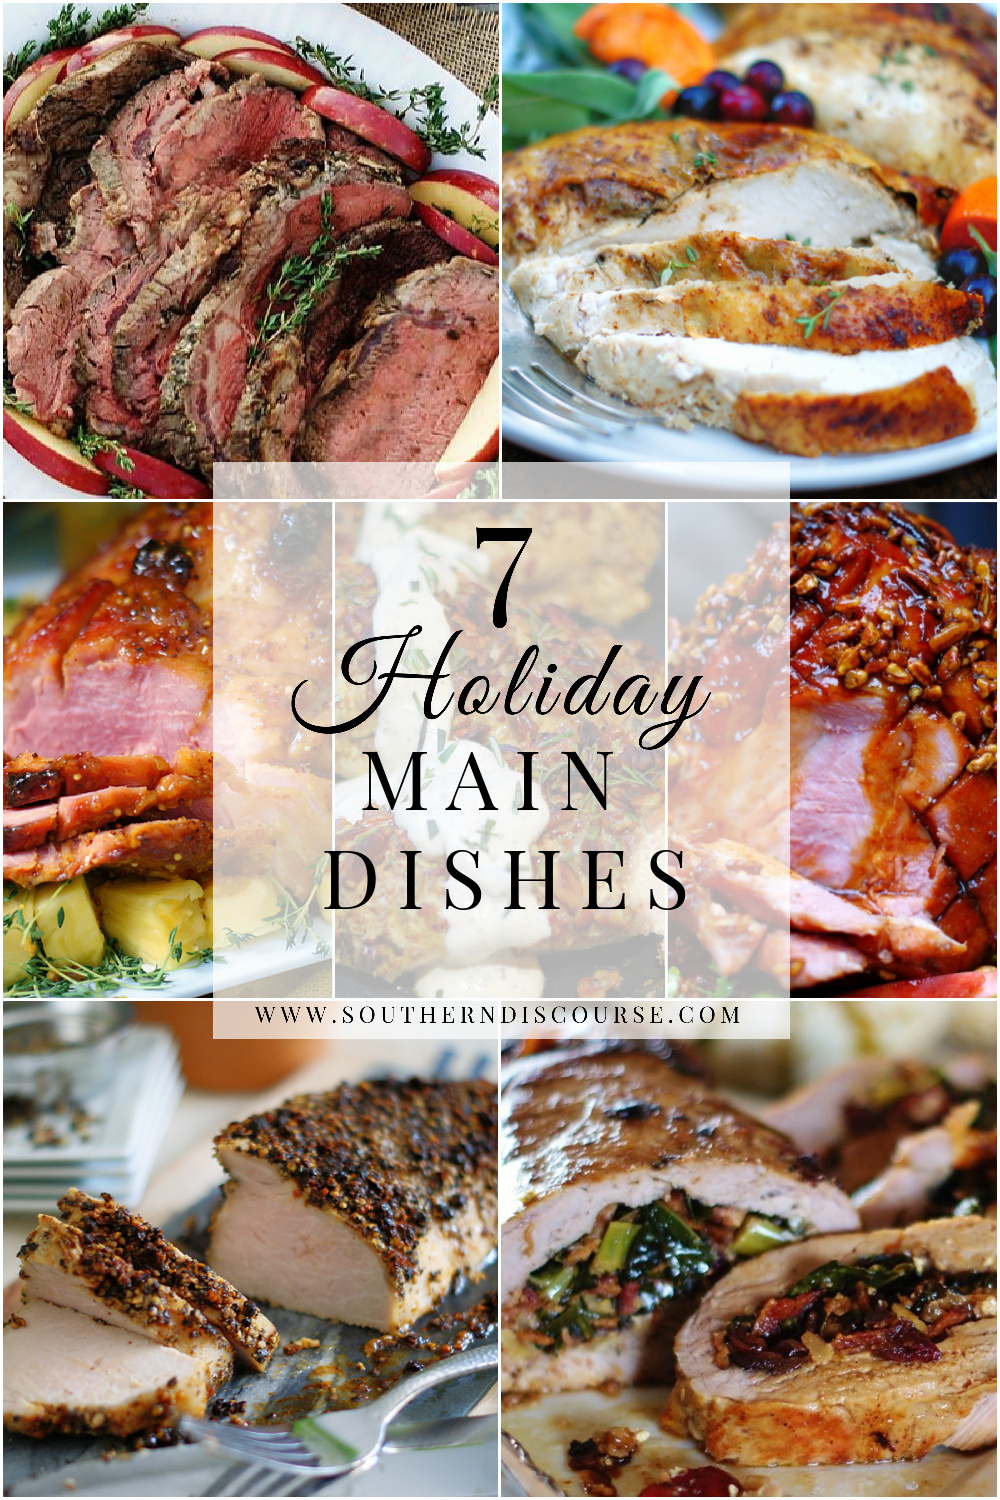 7 holiday main dishes to make your celebrations easy and delicious! From ham to stuffed pork tenderloin to prime rib to turkey- it's all here! #thanksgiving #christmas #easter